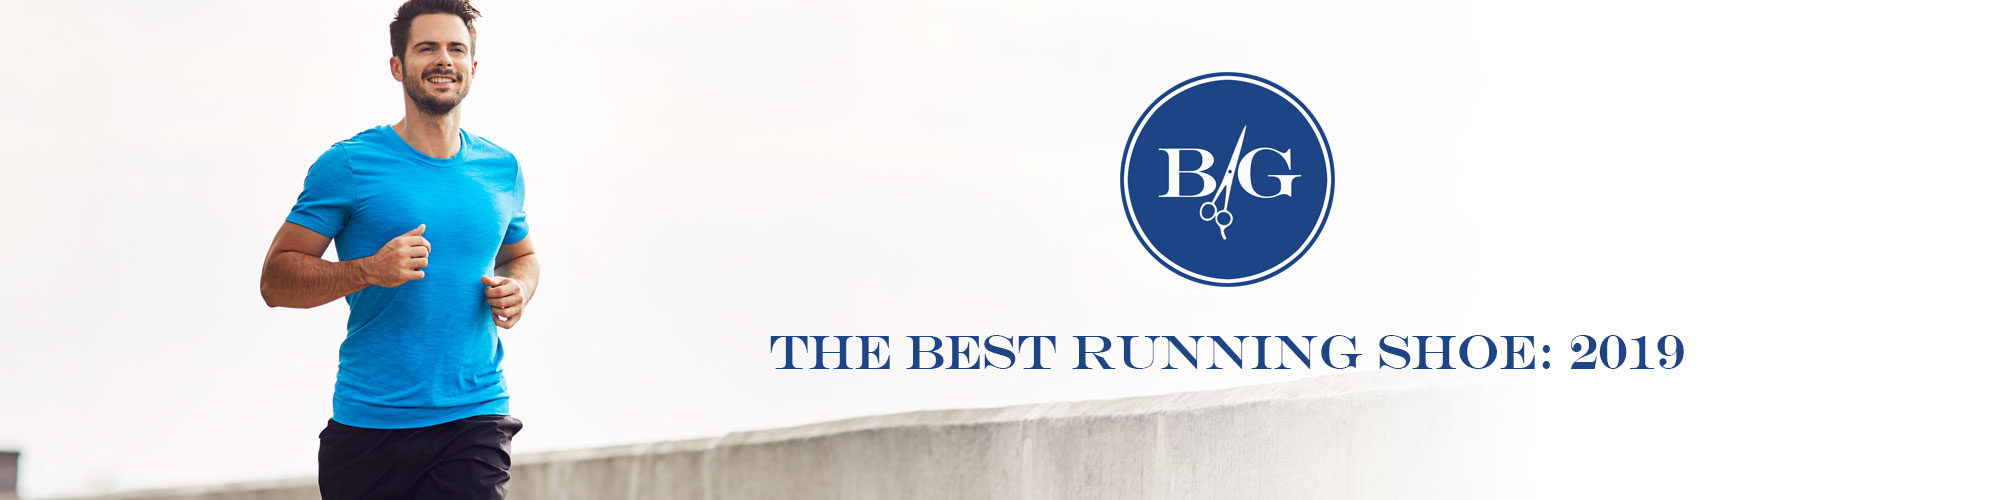 Review: Best Running Shoe 2019 by BestGentleman